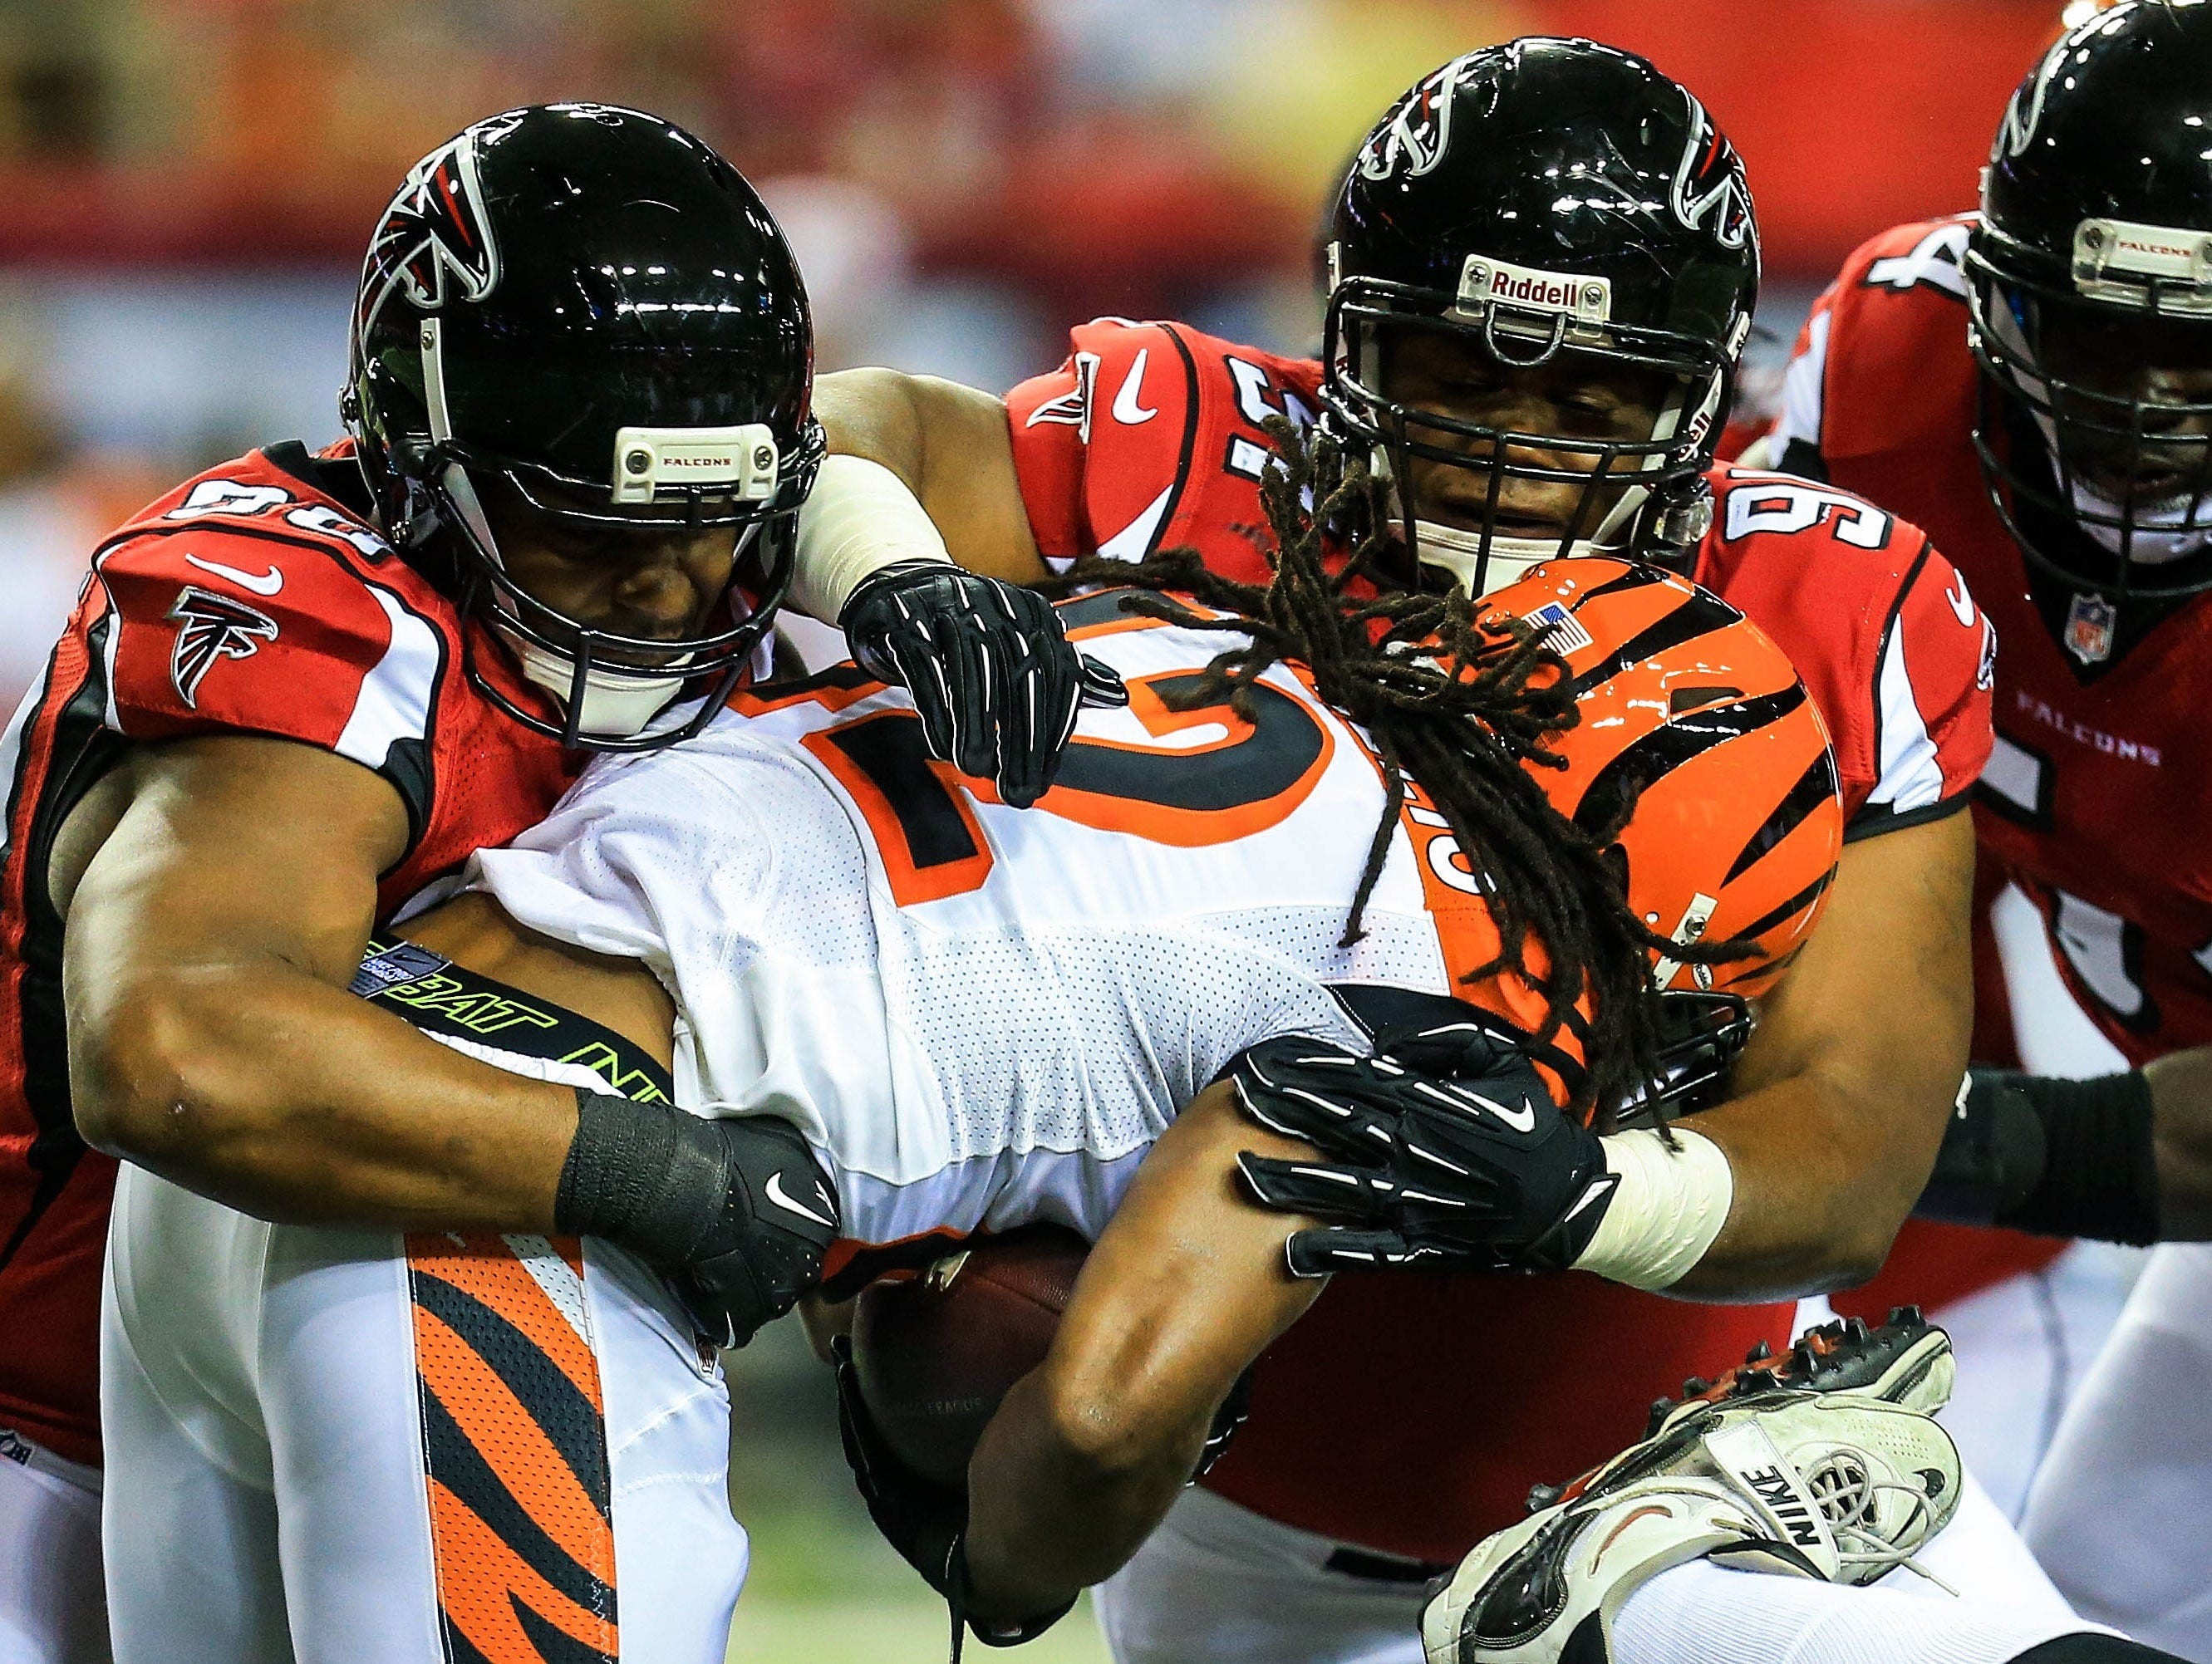 Atlanta Falcons defensive end Osi Umenyiora (90) and nose tackle Travian Robertson (92) tackle Cincinnati Bengals running back BenJarvus Green-Ellis (42) in the first half at the Georgia Dome.